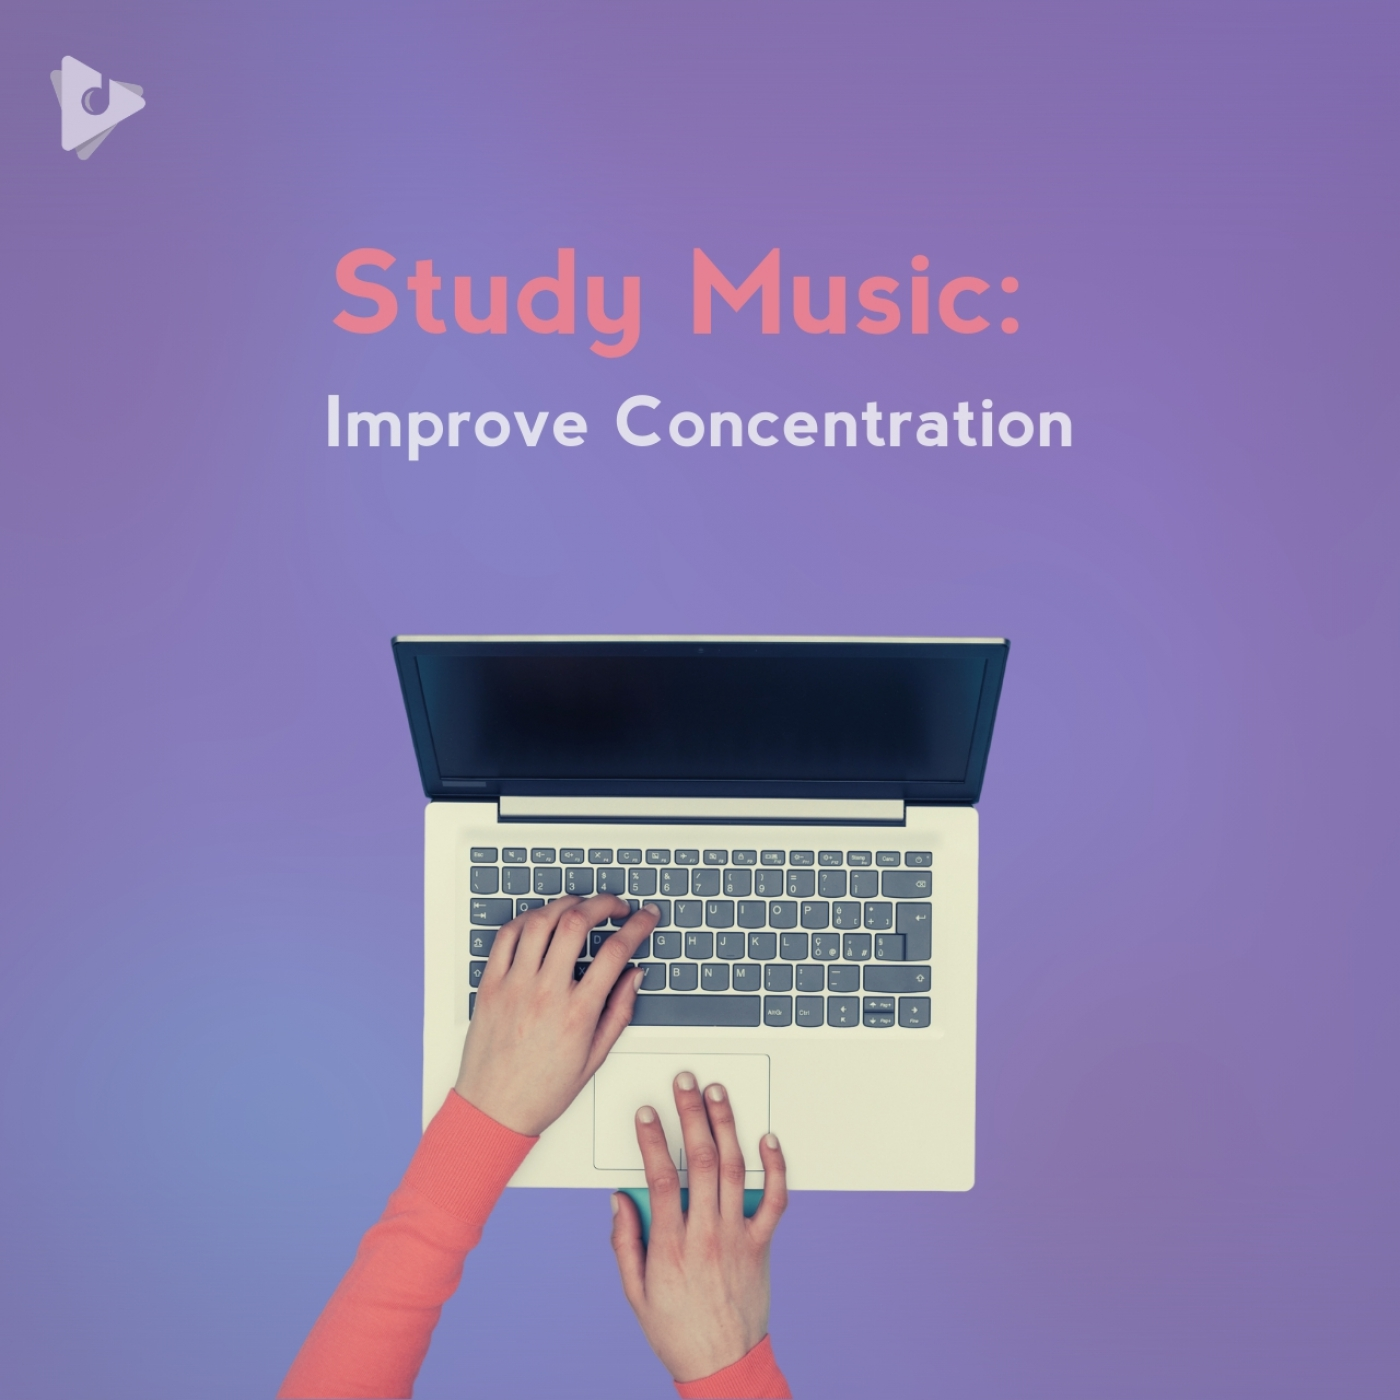 Study Music: Improve Concentration